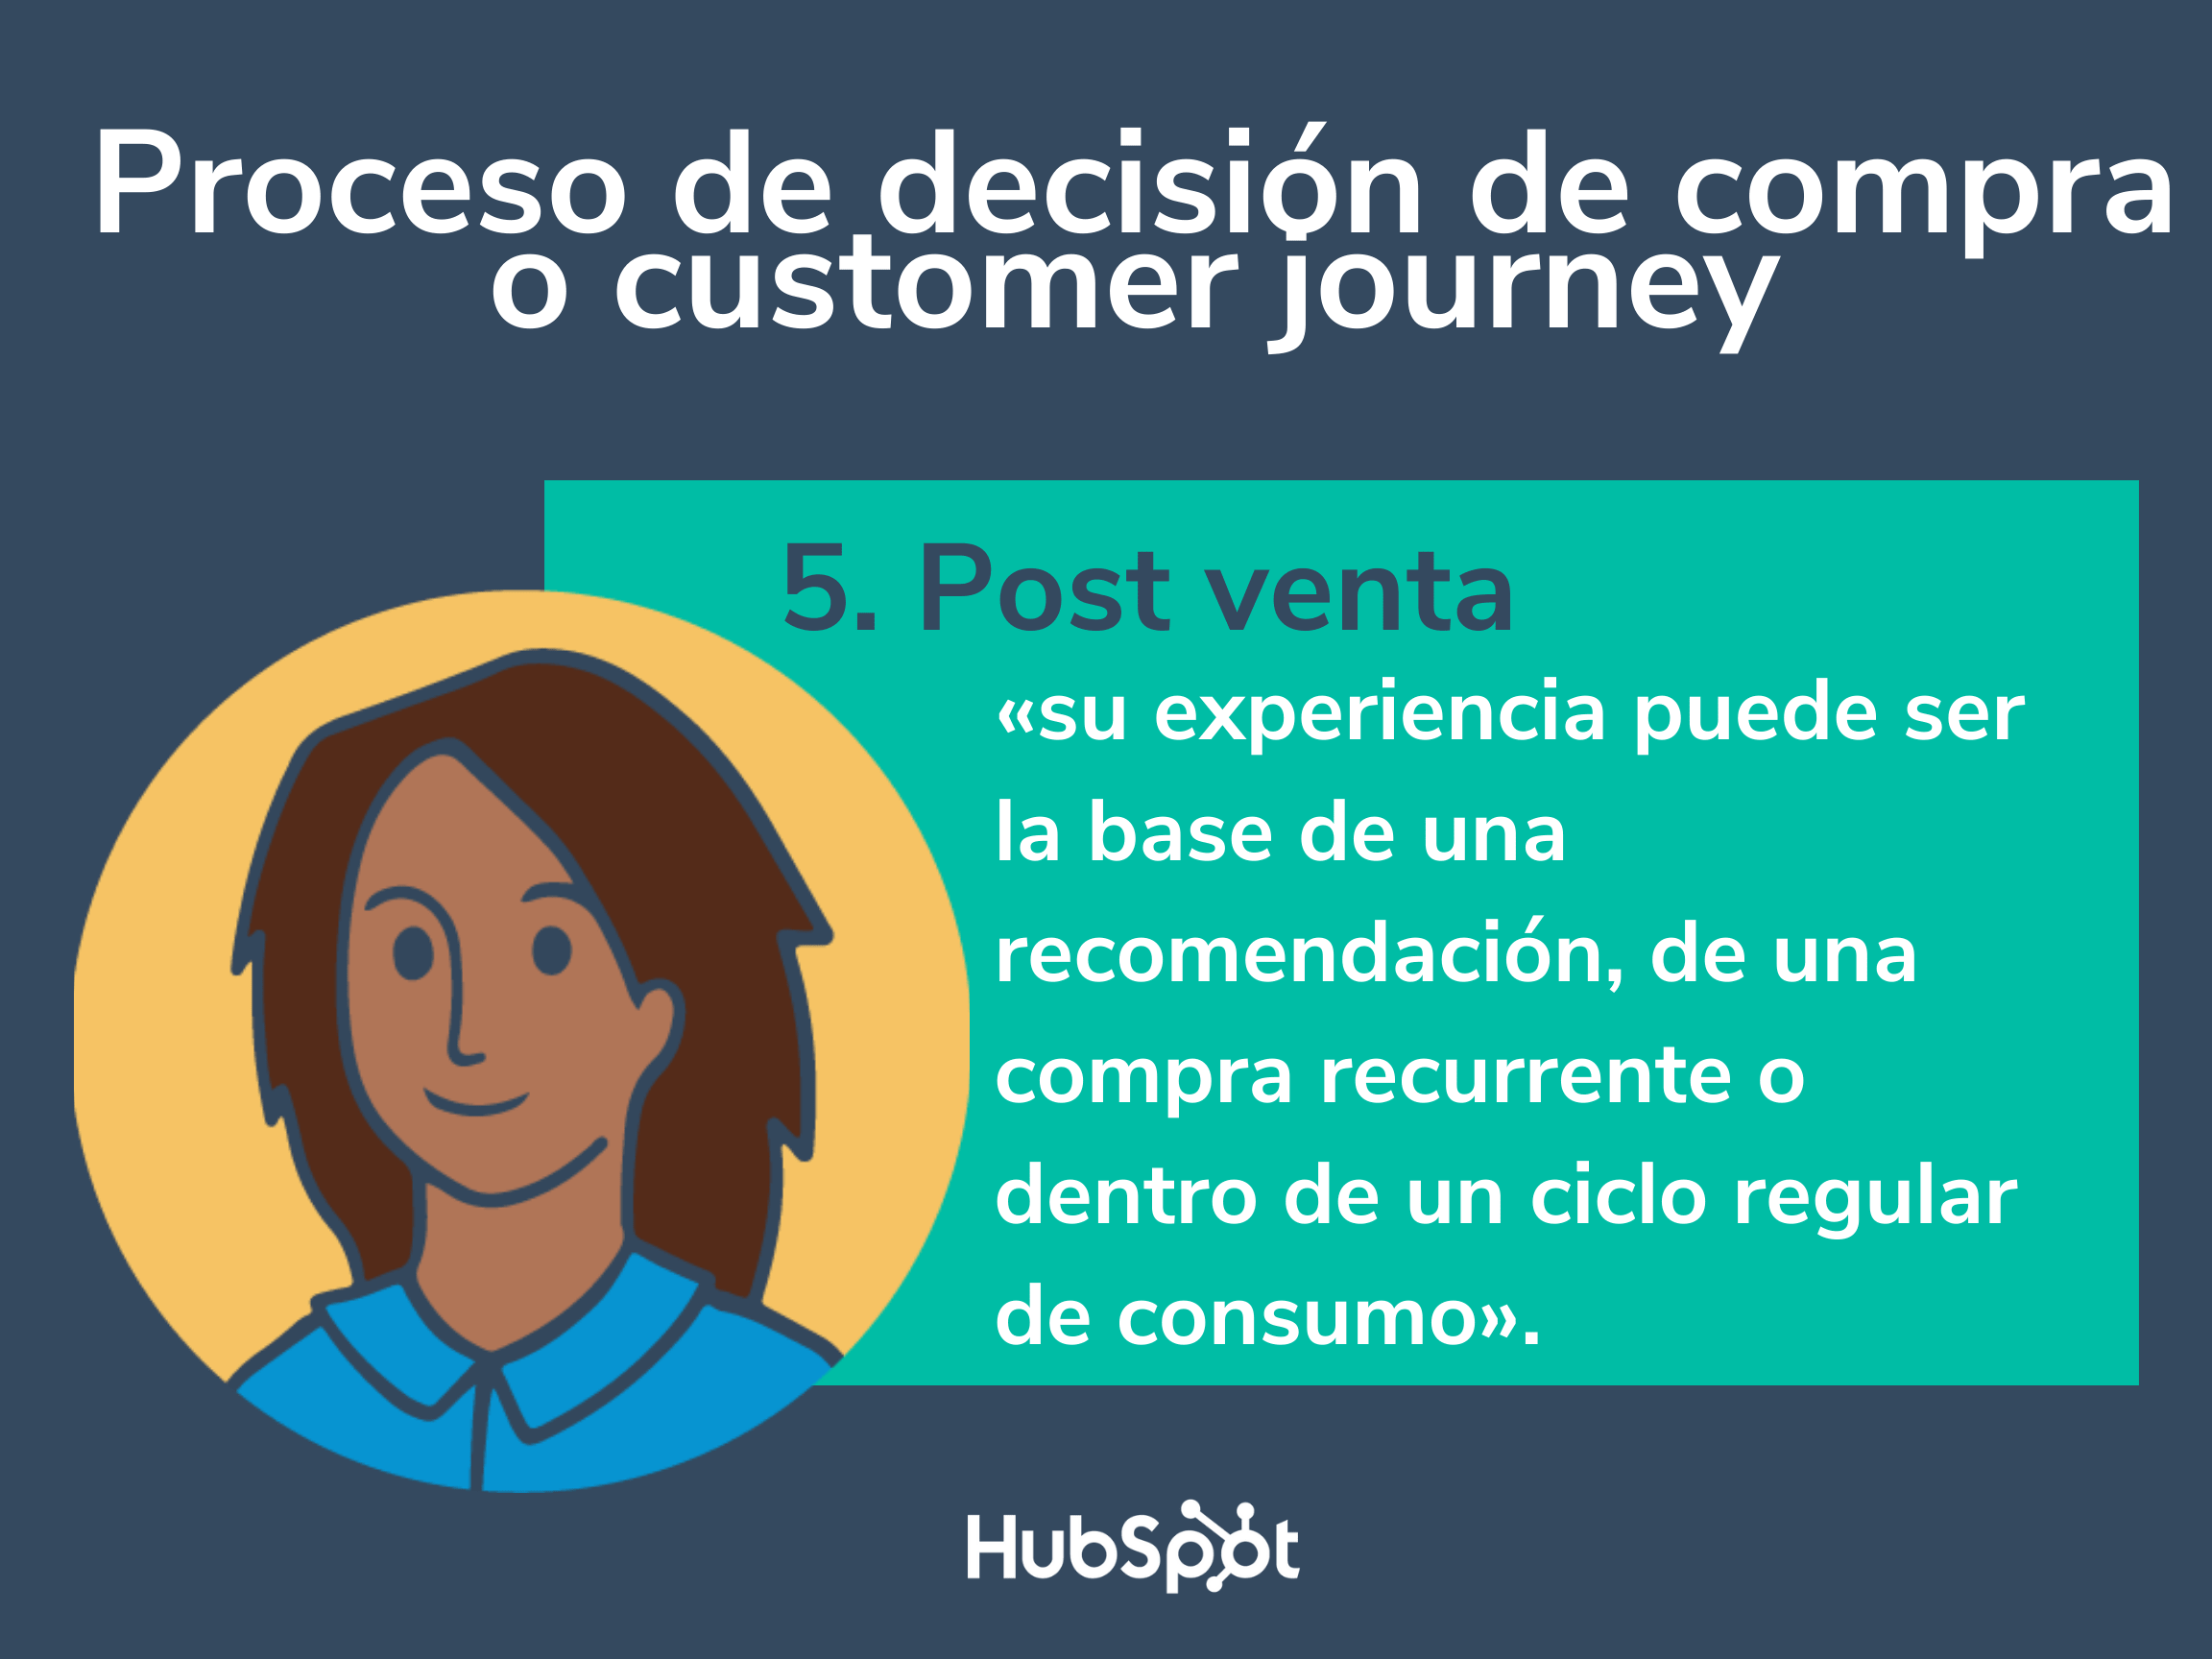 Quinta etapa del customer journey: post venta